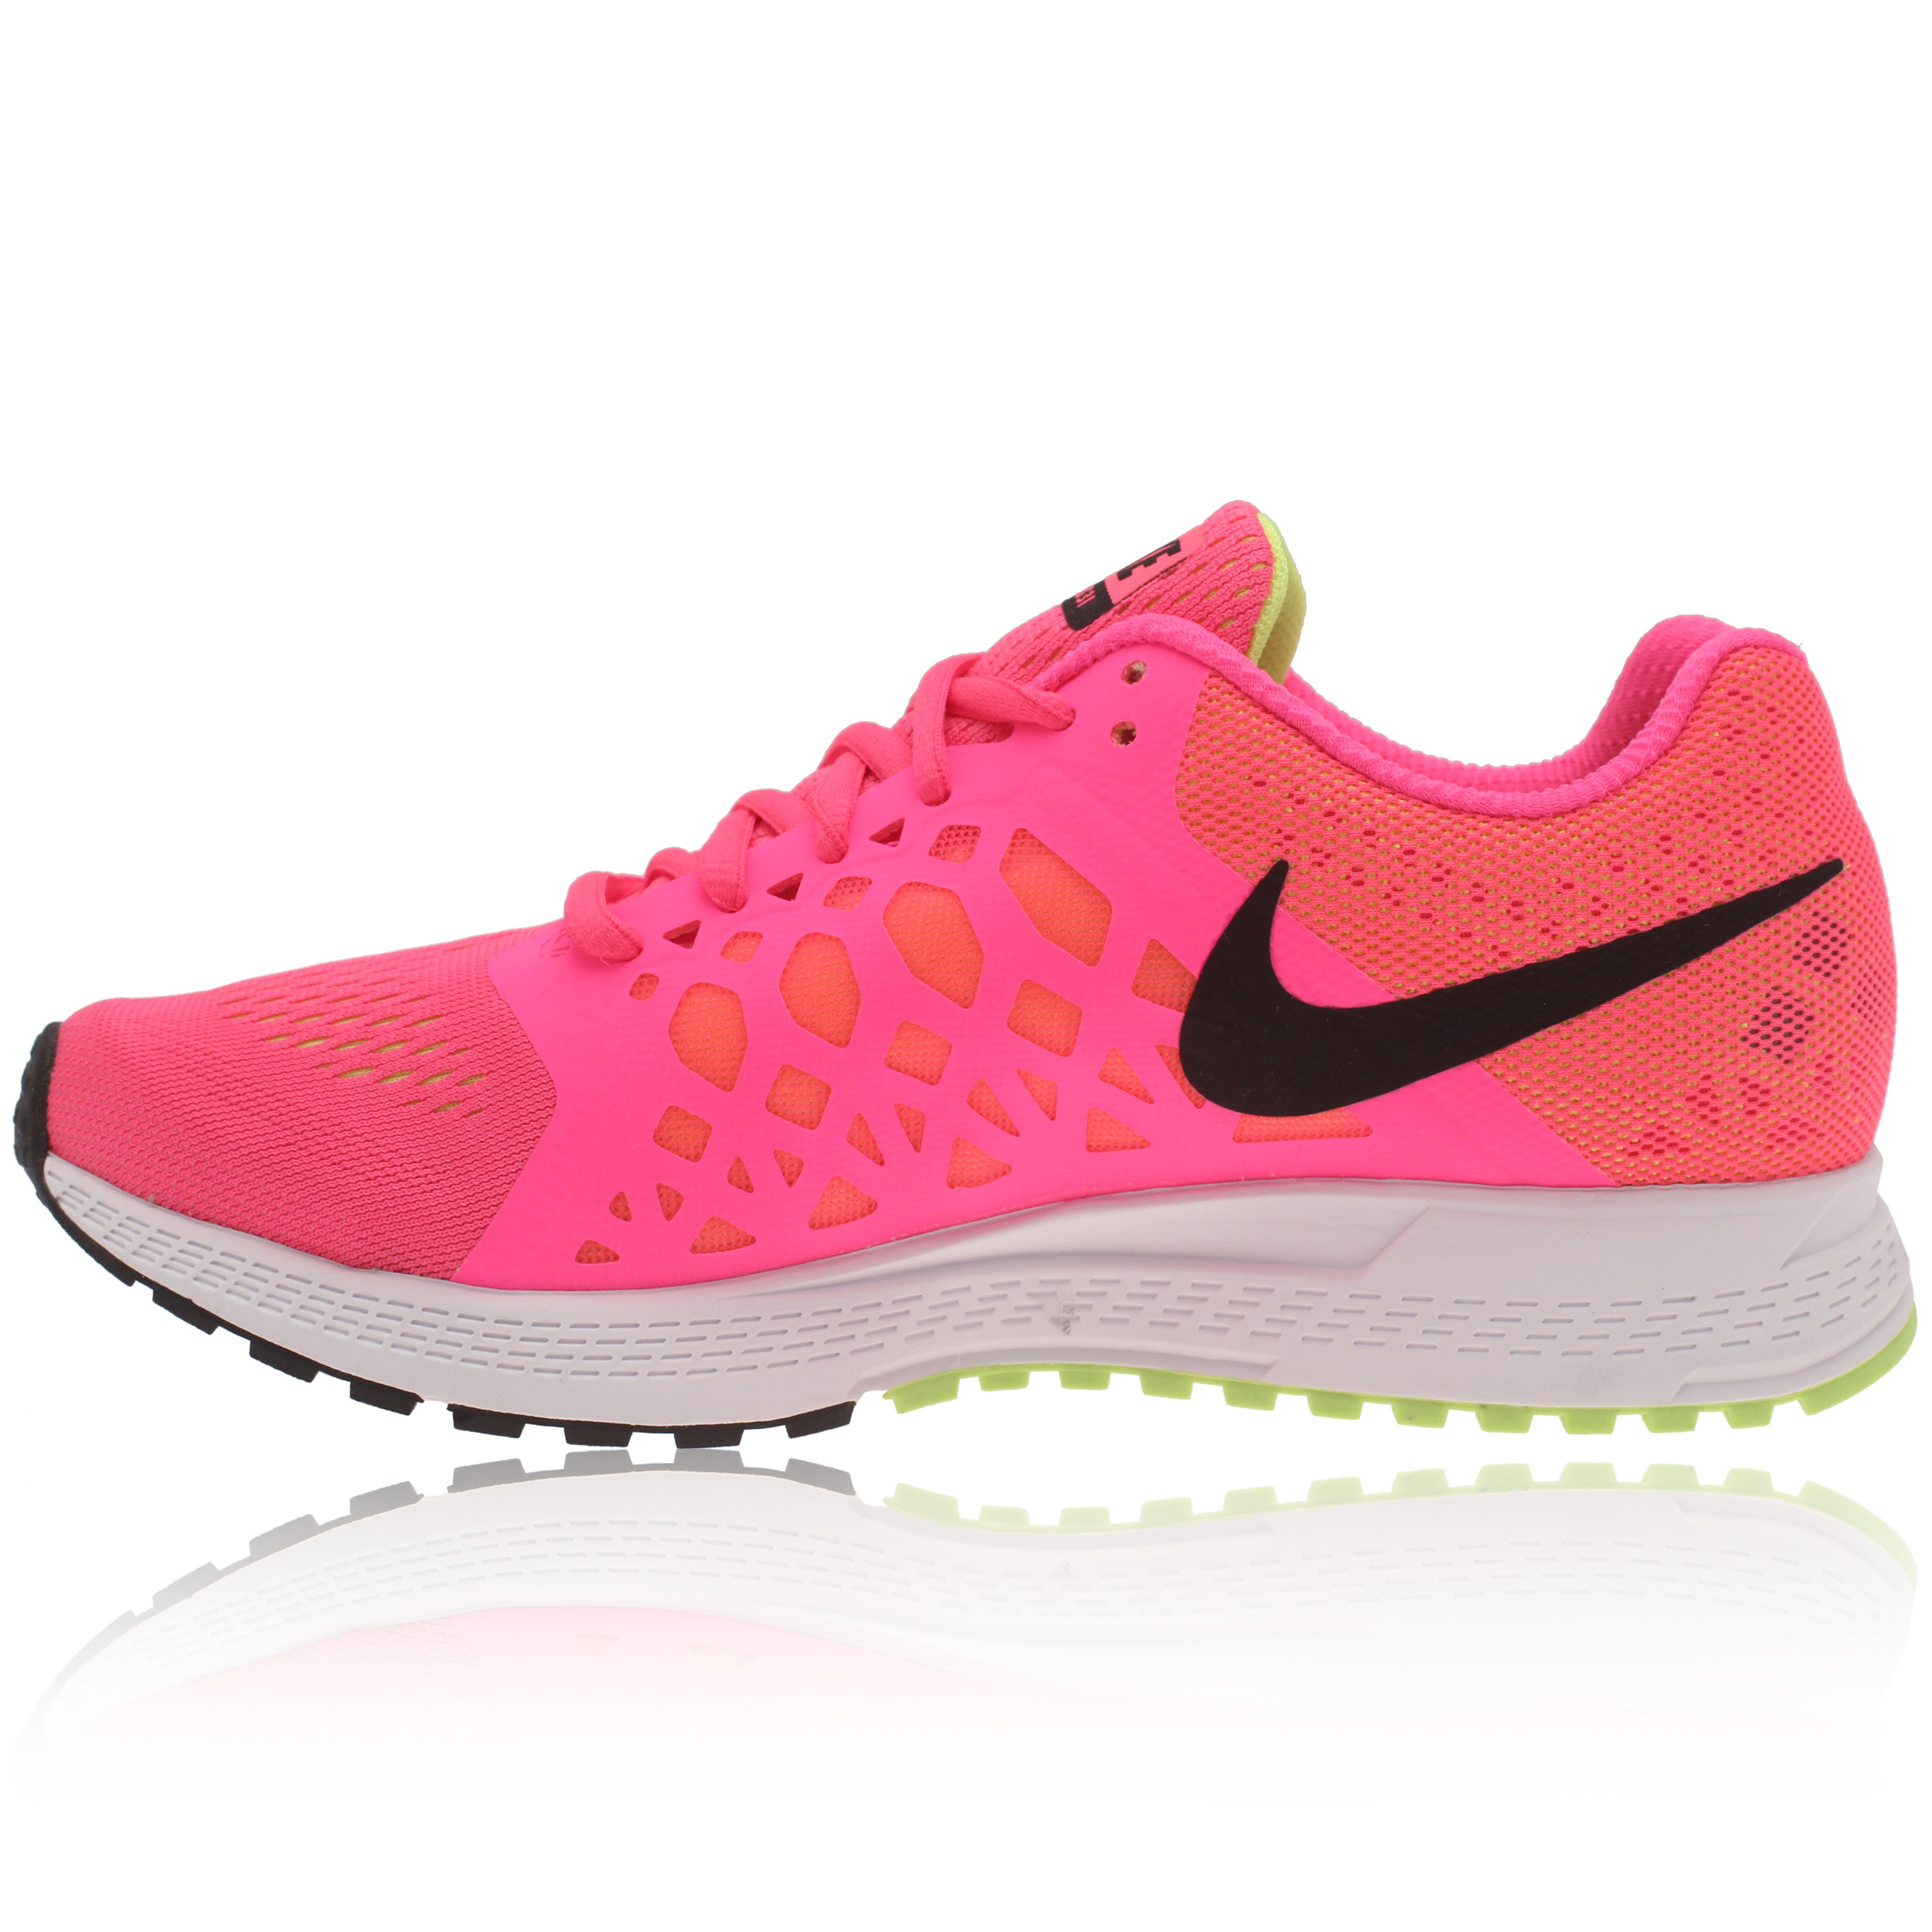 nike zoom pegasus 31 women 39 s running shoes fa14 20. Black Bedroom Furniture Sets. Home Design Ideas